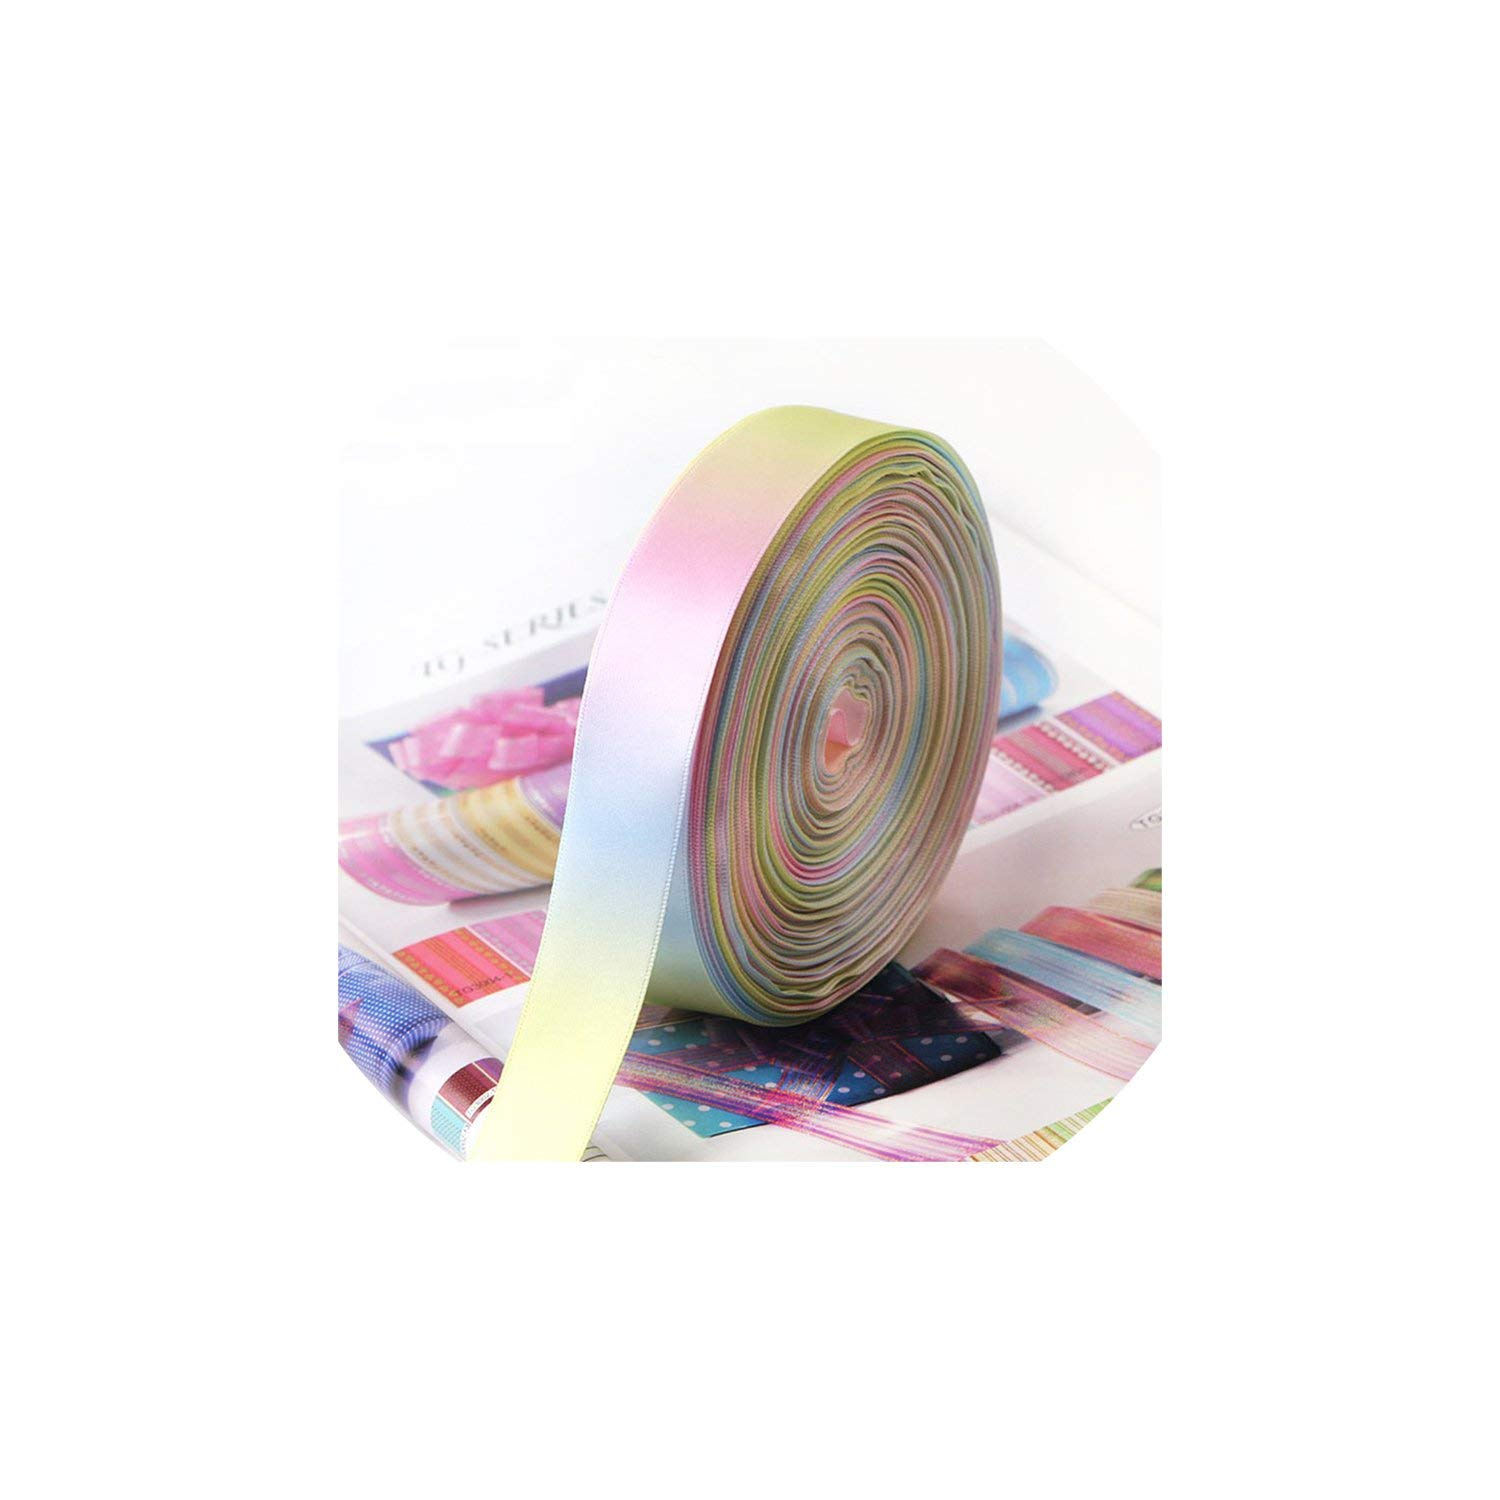 Party Streamers Rainbow Ribbon Printed Polyester Satin Ribbons Handmade Materials,50mm by AYO-LE streamers (Image #1)